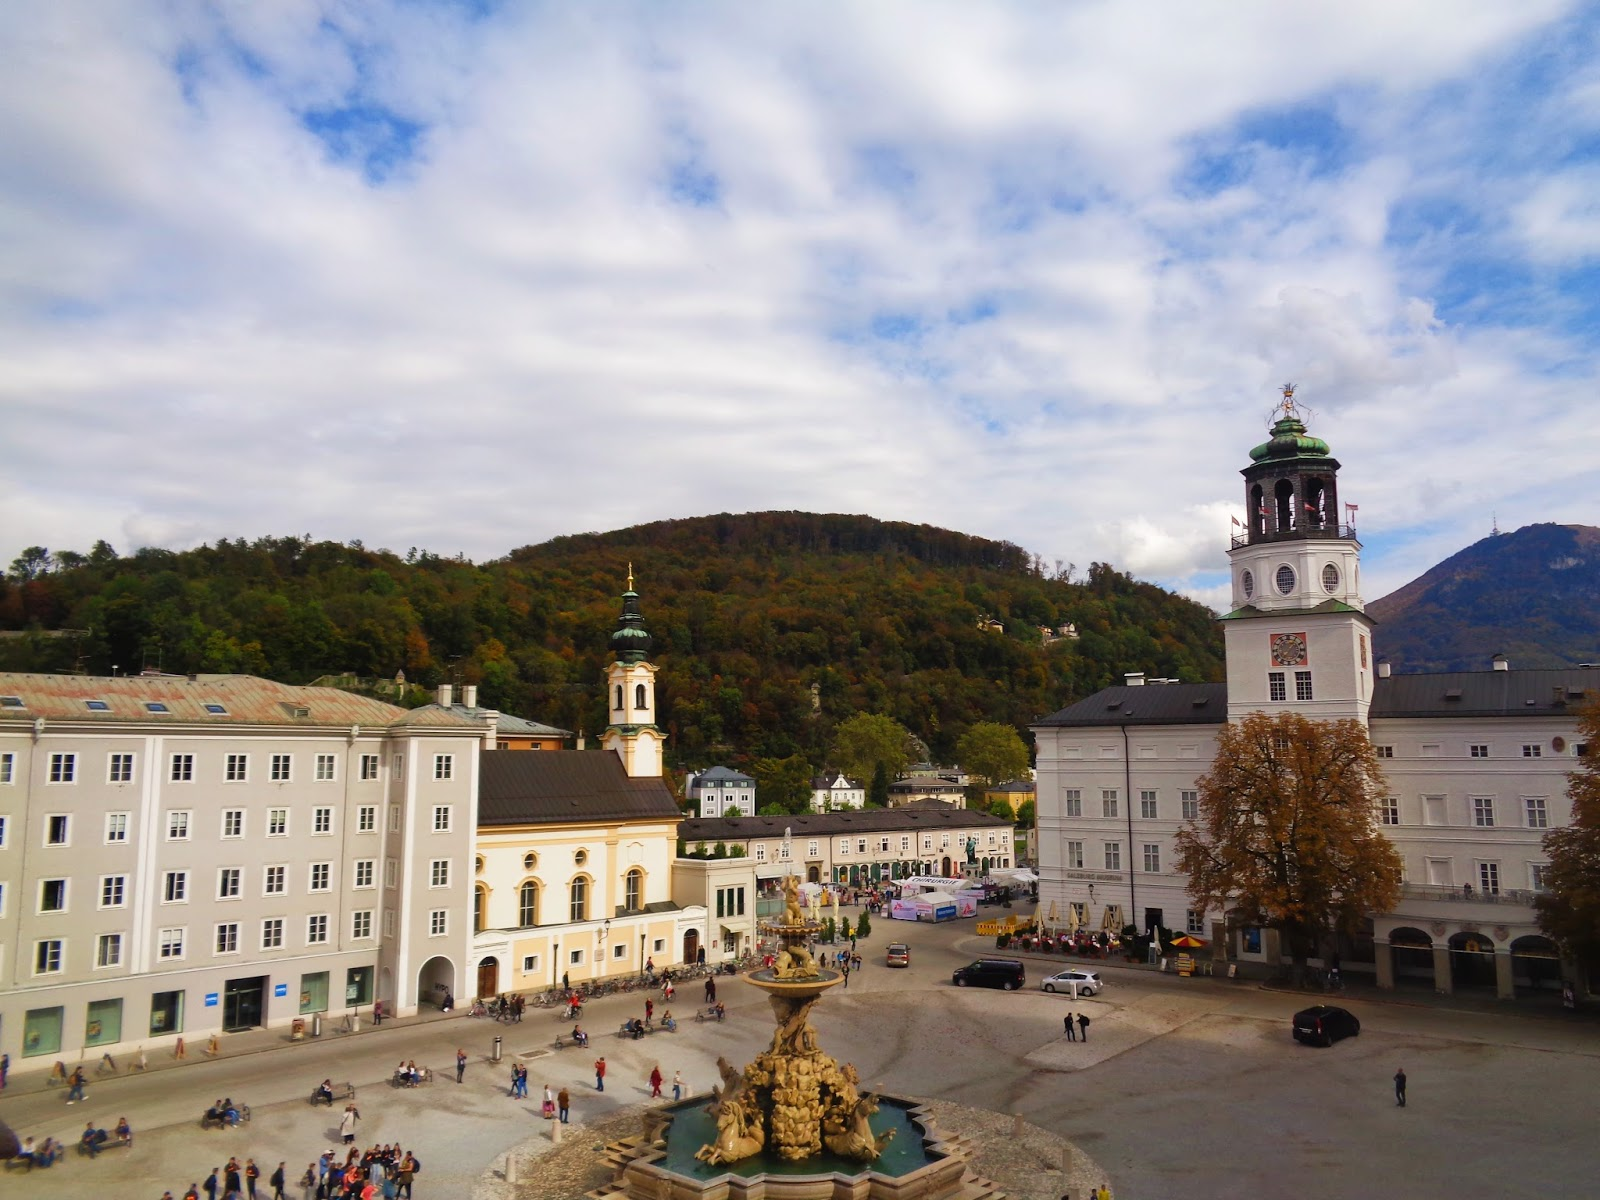 5 Things to Do in Salzburg, Austria - Photo diary